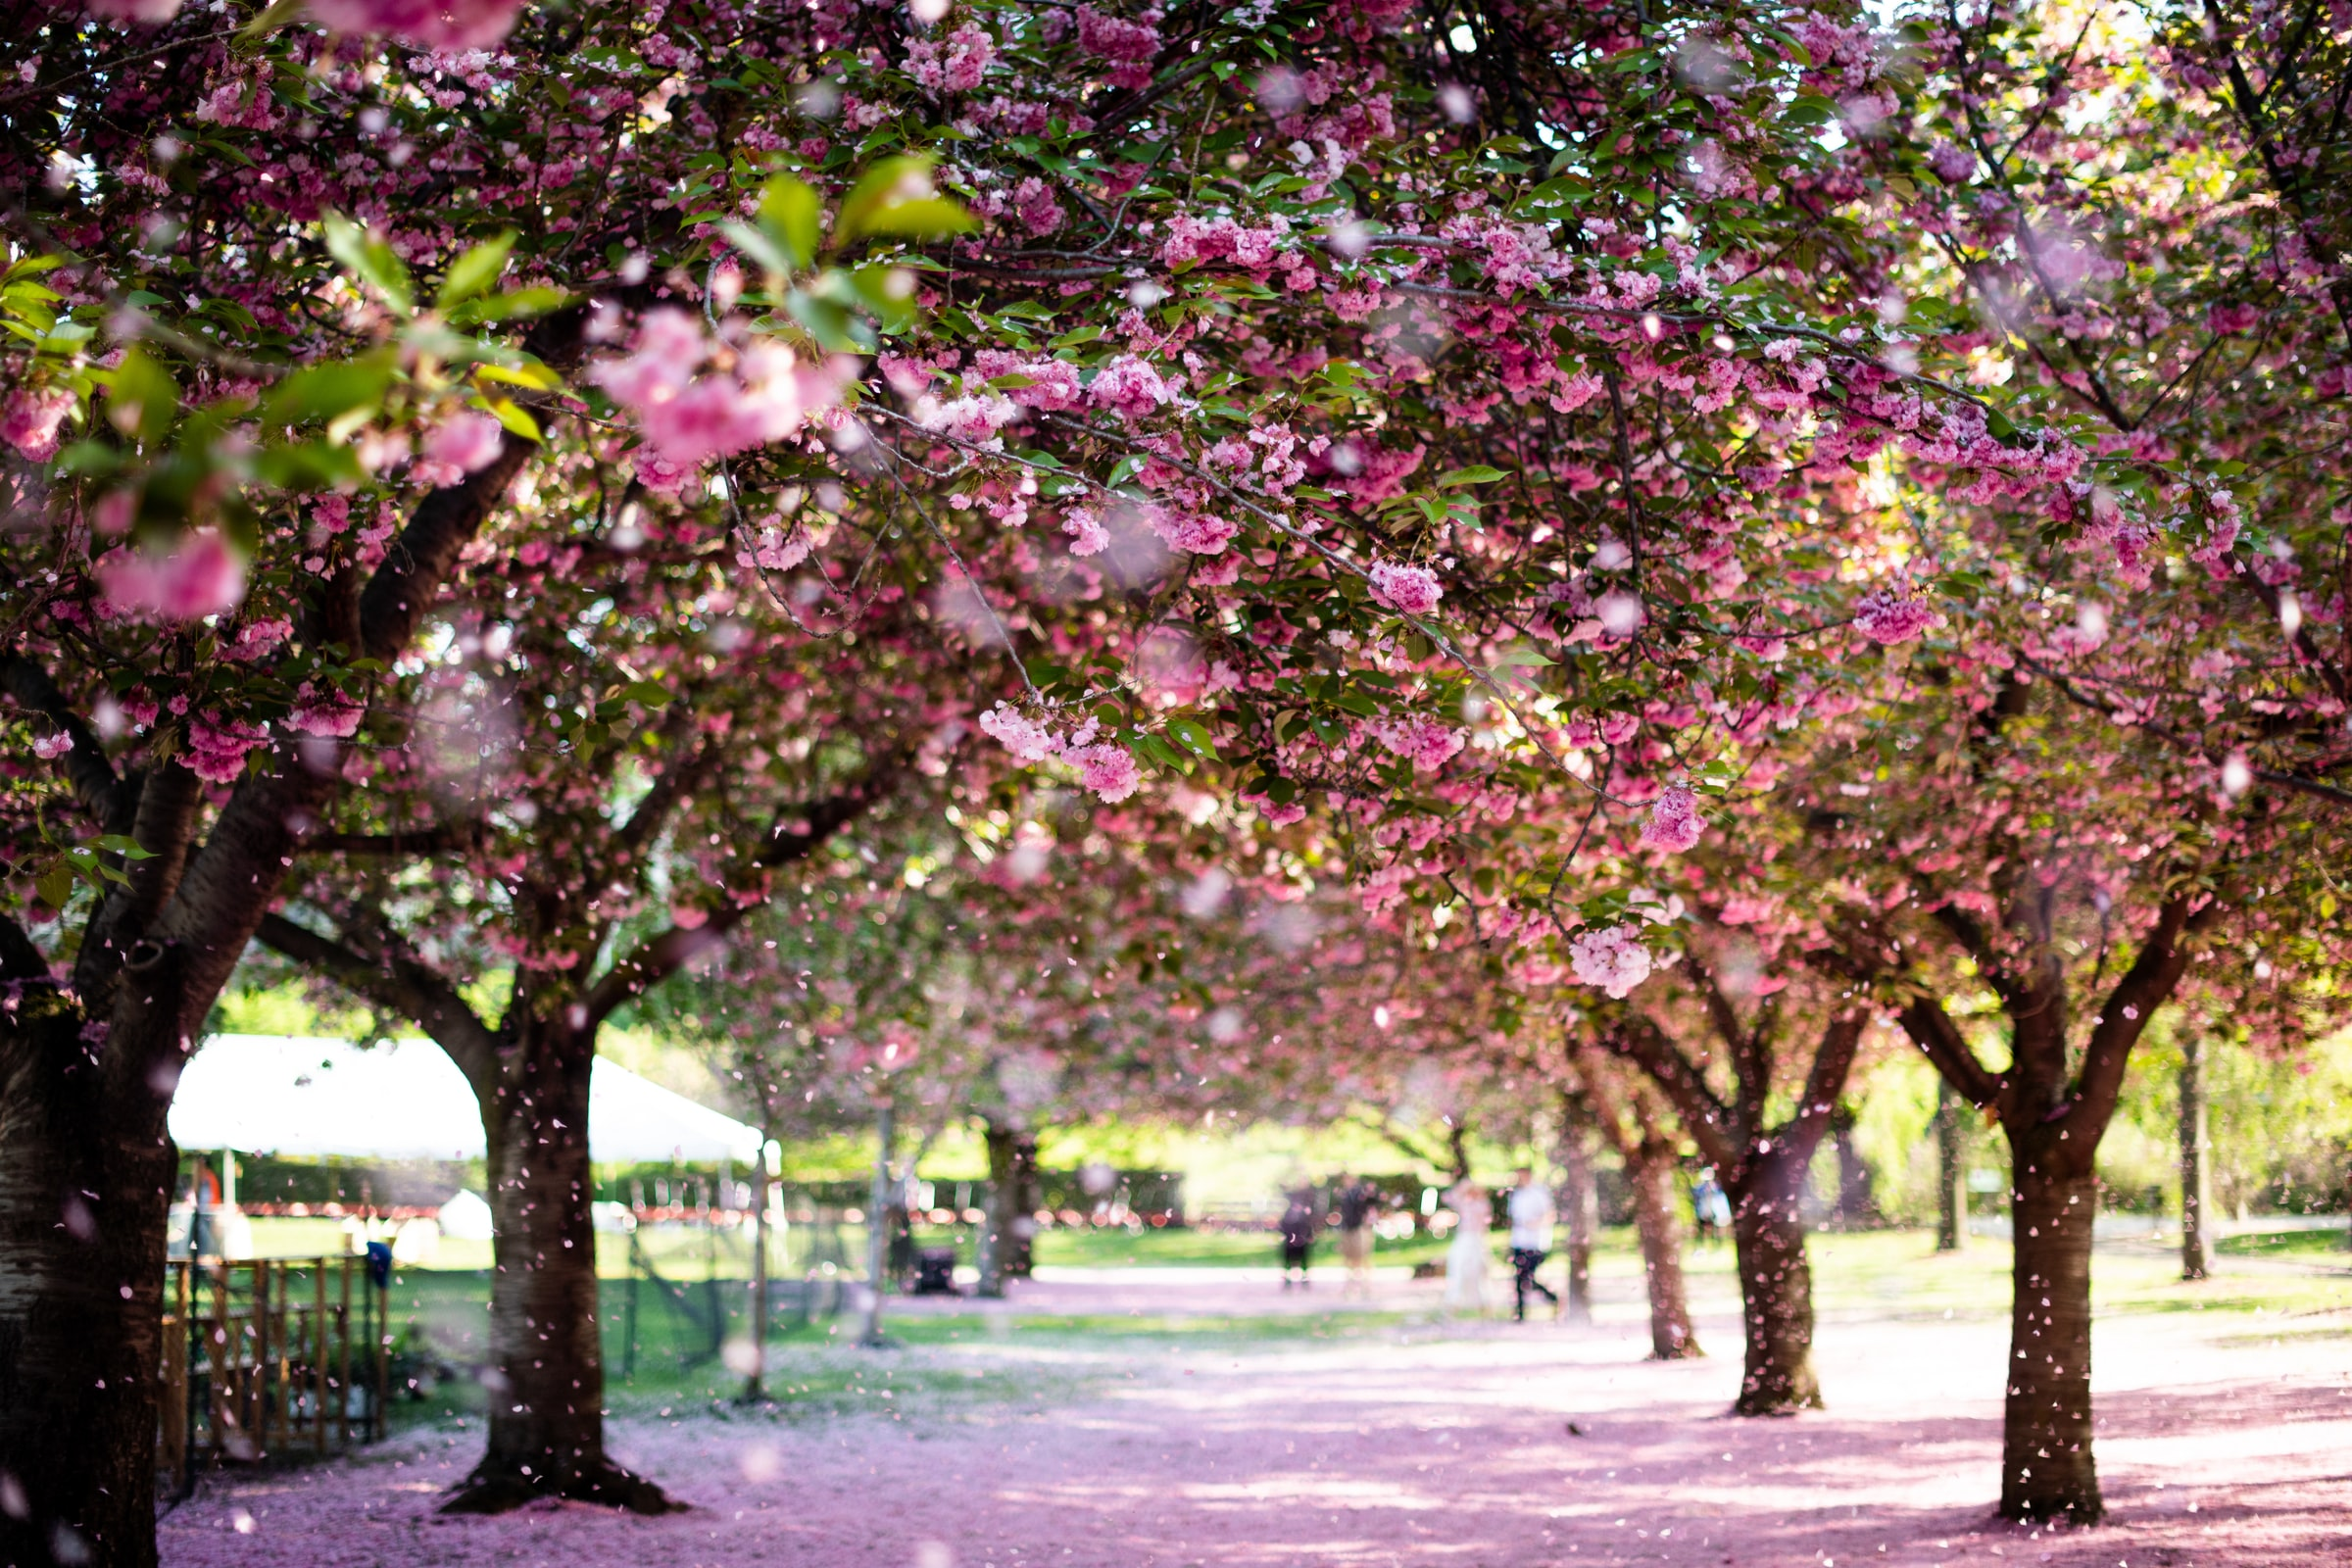 Trees blooming in the Brooklyn Botanic Garden in New York City